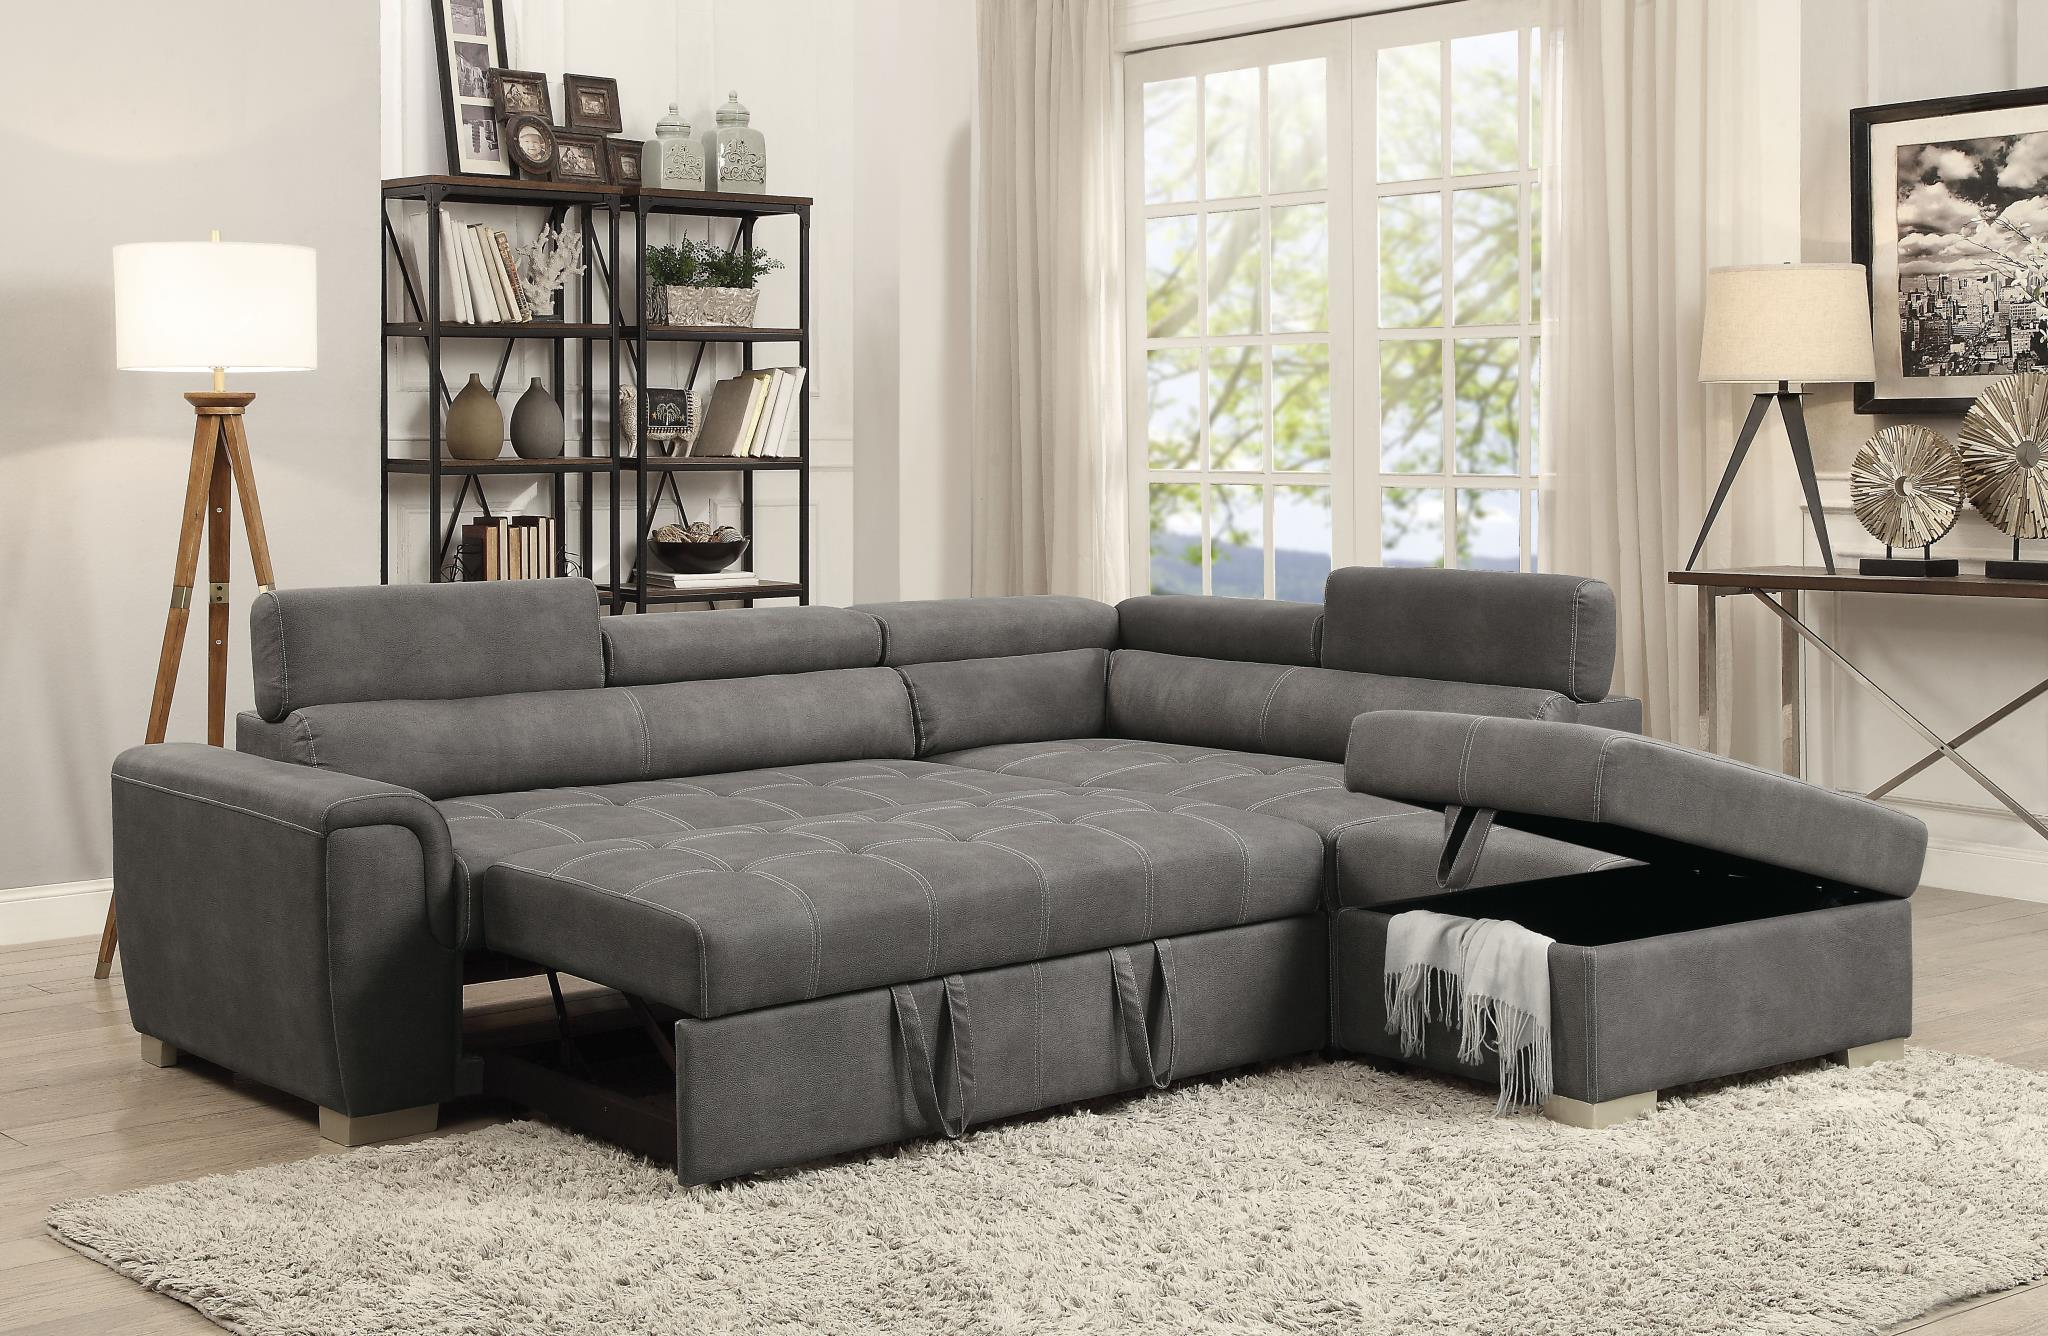 Sectional Sleeper Sofa w/ Pull Out Bed